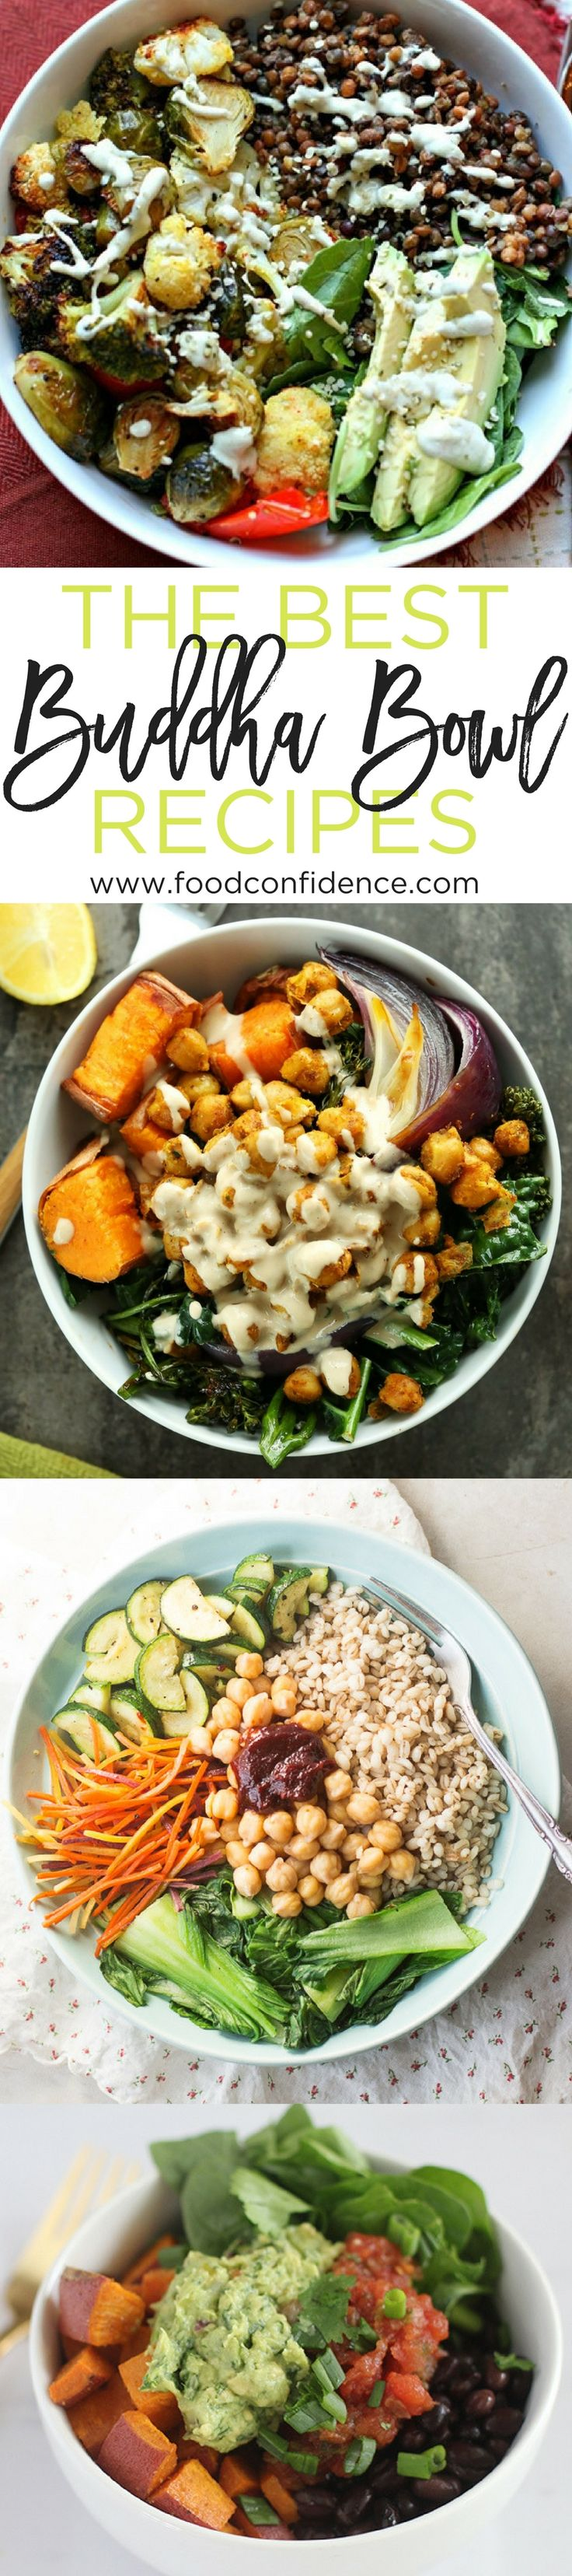 Buddha Bowls are the perfect healthy lunch or dinner - they're packed with protein, veggies, whole grains, and tons of flavor, plus they're super flexible and can be made with whatever you have on hand. Need some tips for getting started? Check out this l http://eatdojo.com/easy-healthy-recipes-meals-breakfast-lunch-dinner/